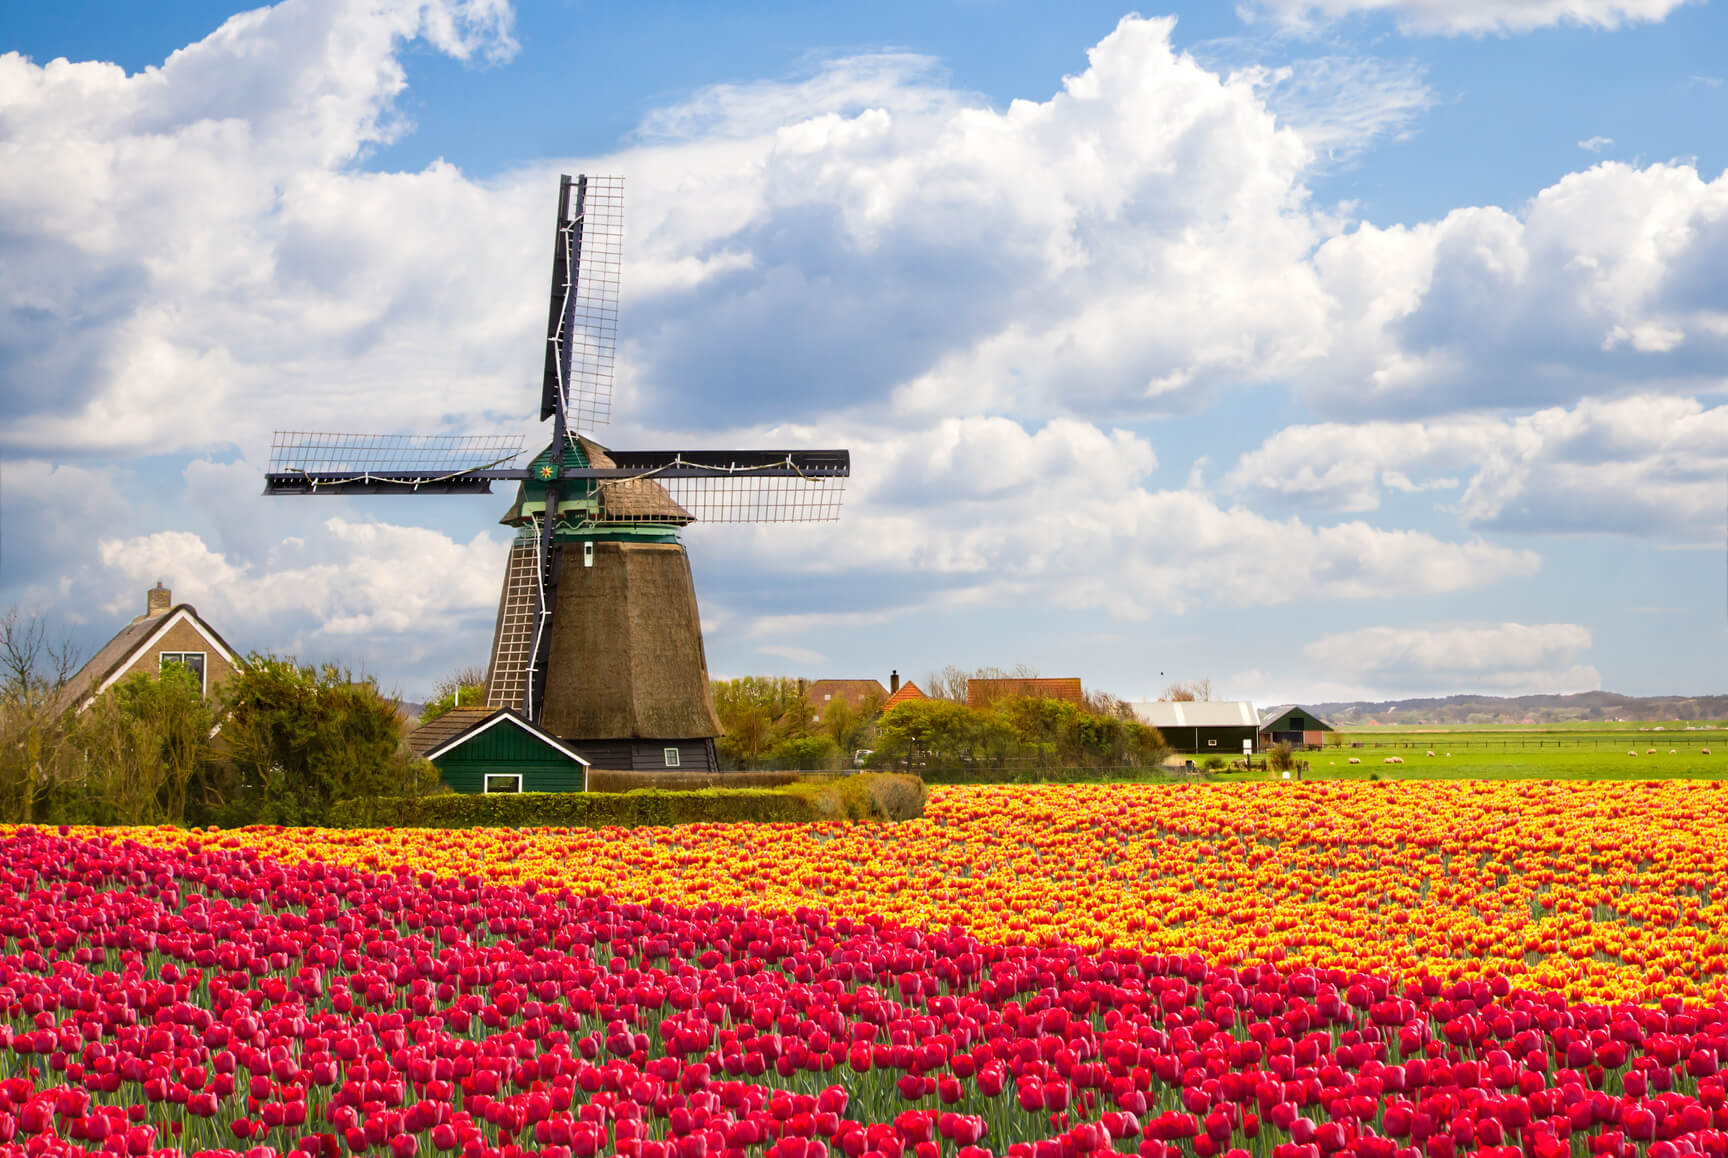 Accra, Ghana to Amsterdam, Netherlands for only $454 USD roundtrip